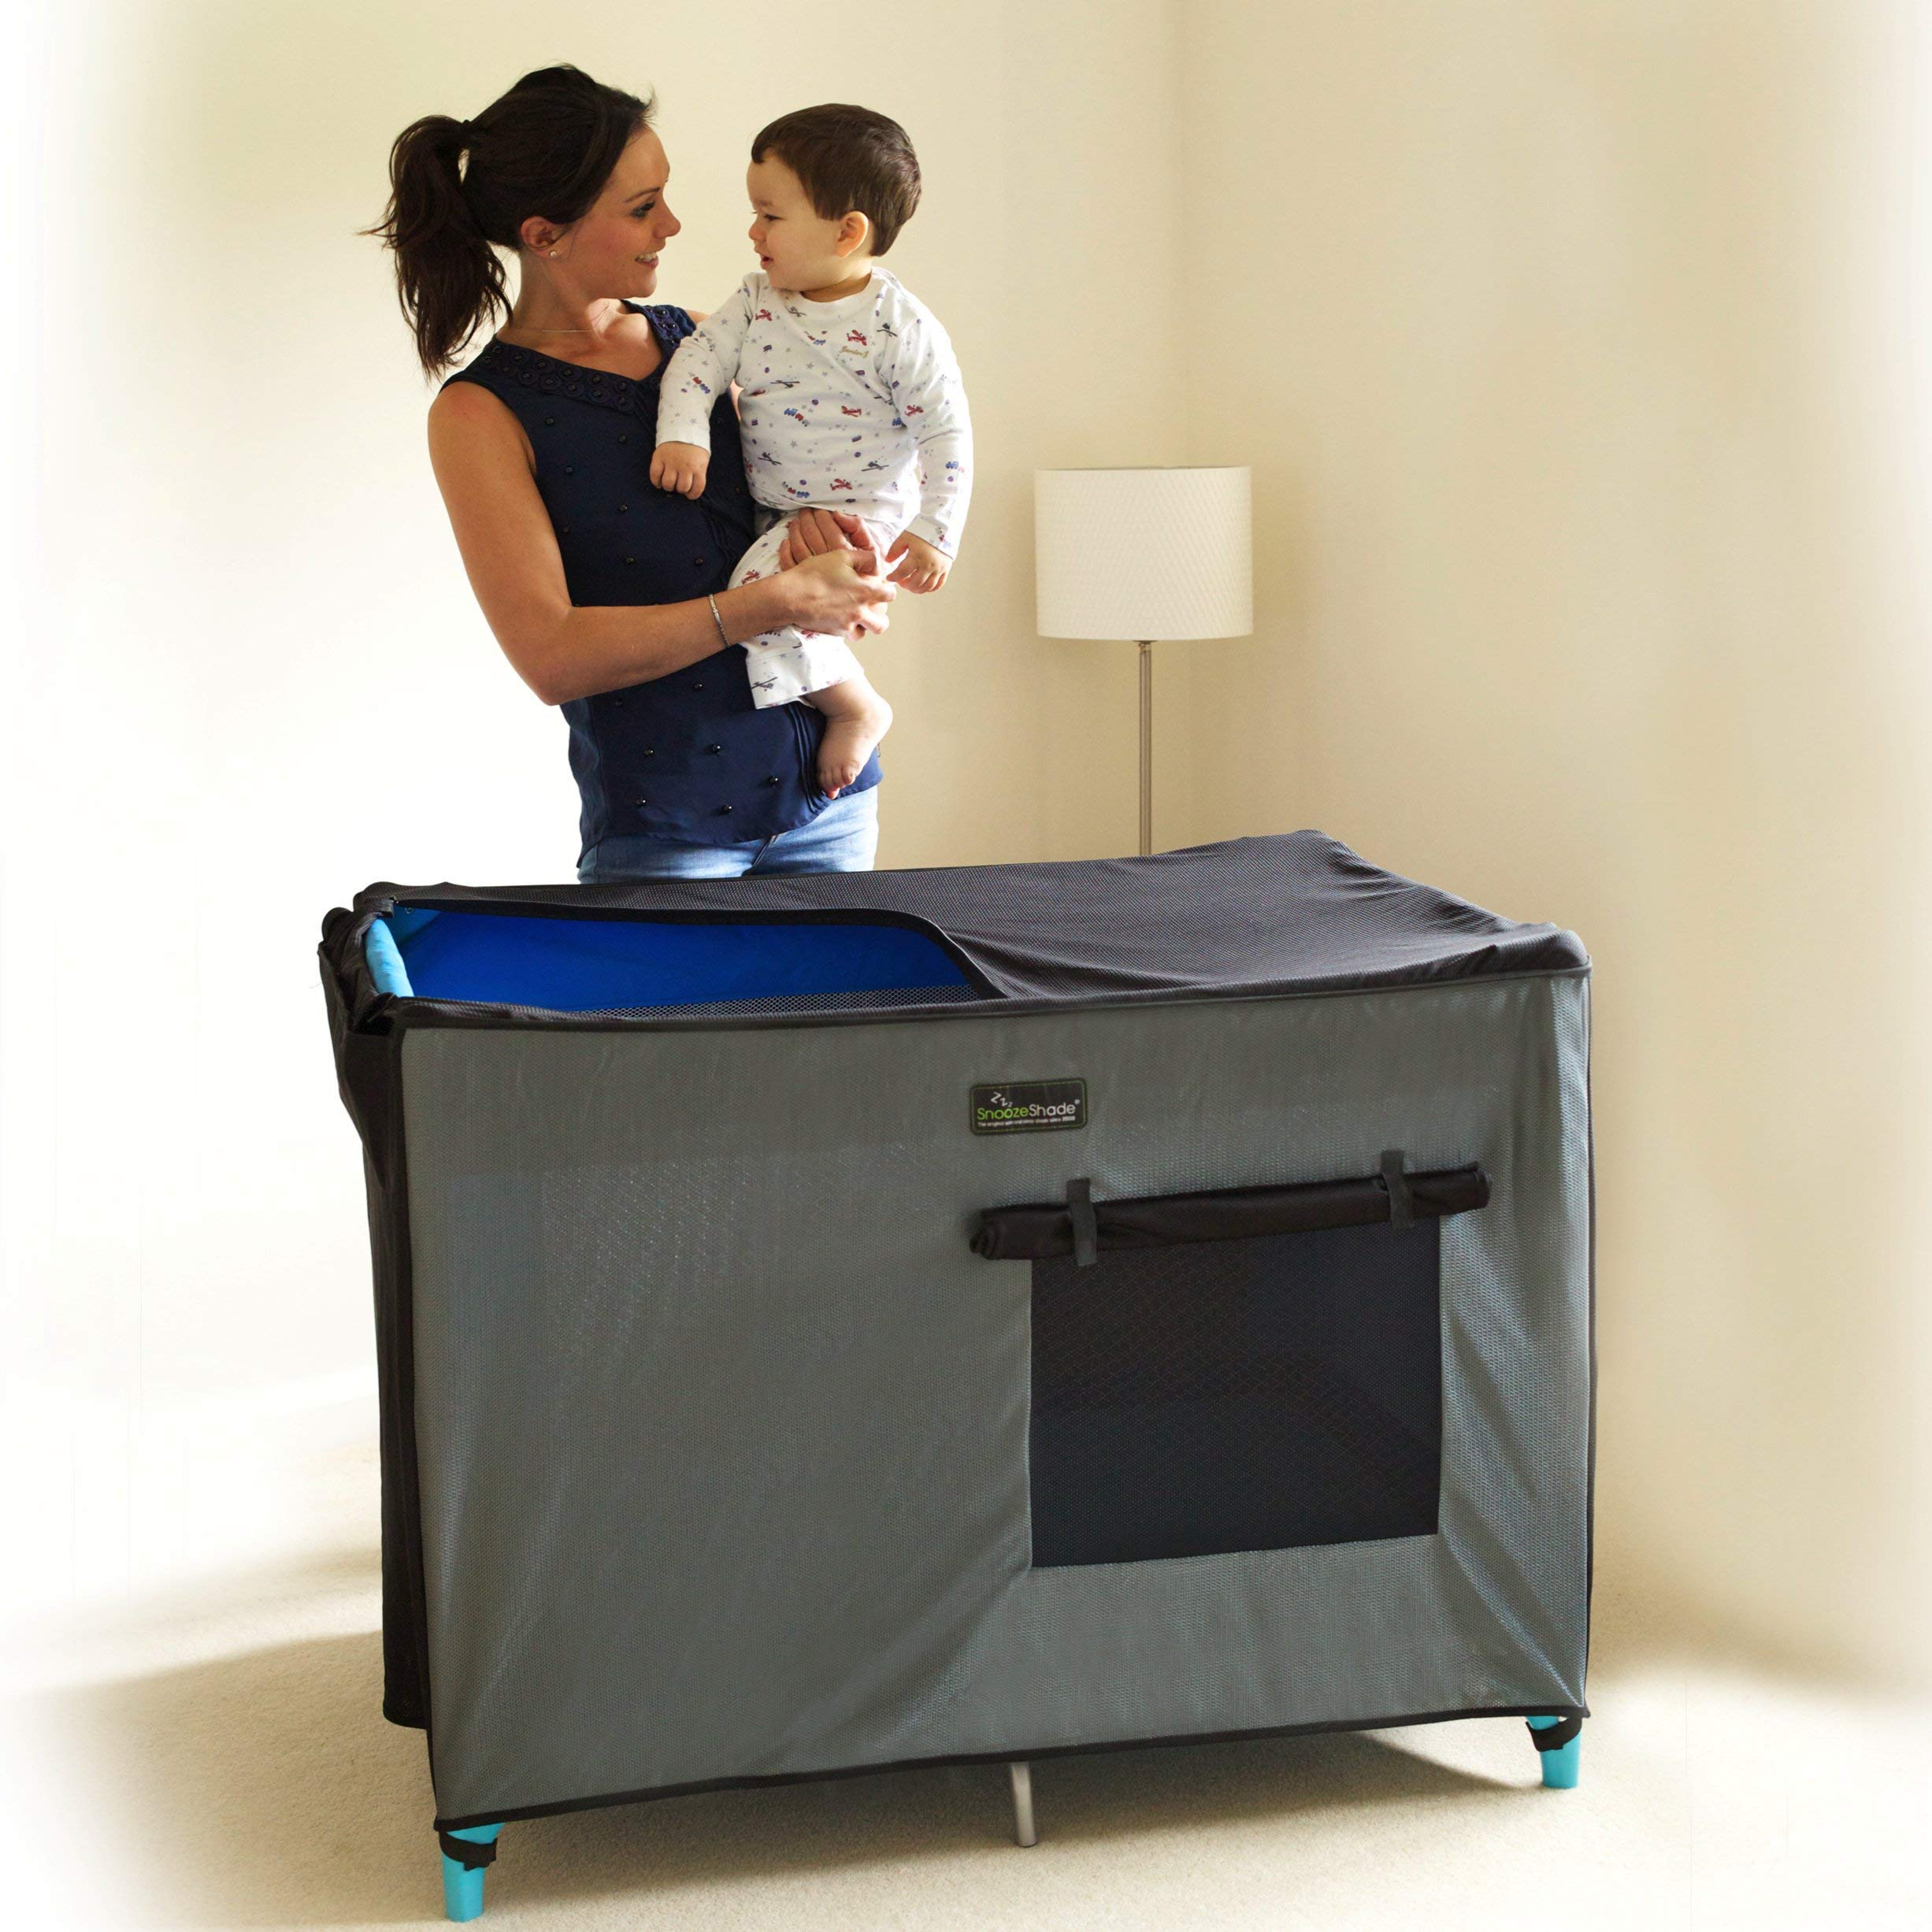 SnoozeShade Pack N Play Crib Canopy and Tent | Breathable Netting Sleep and Cover Shade | Award-Winning & Mom-Designed by SnoozeShade